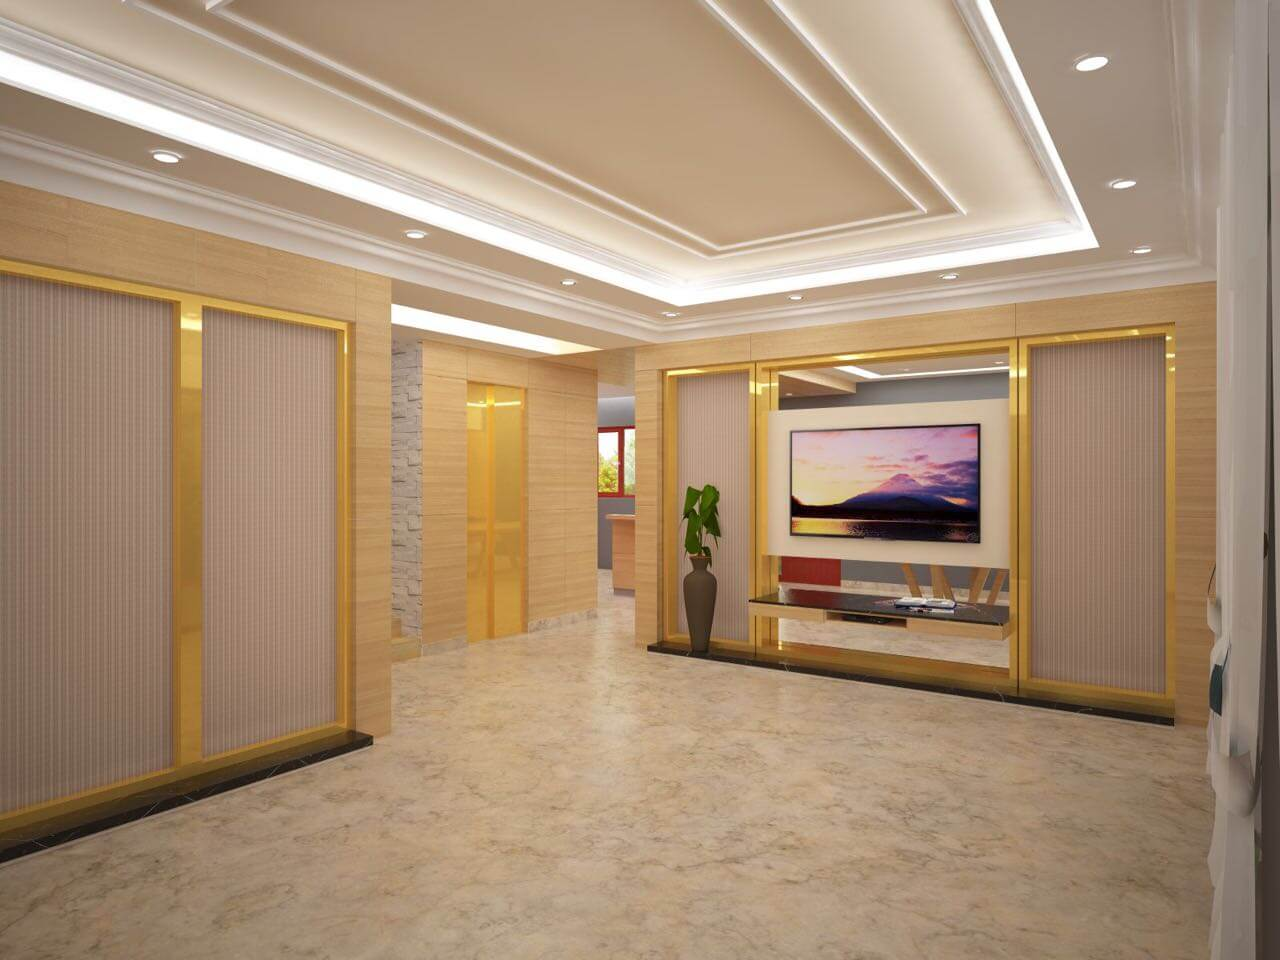 Living Room with Golden Touch